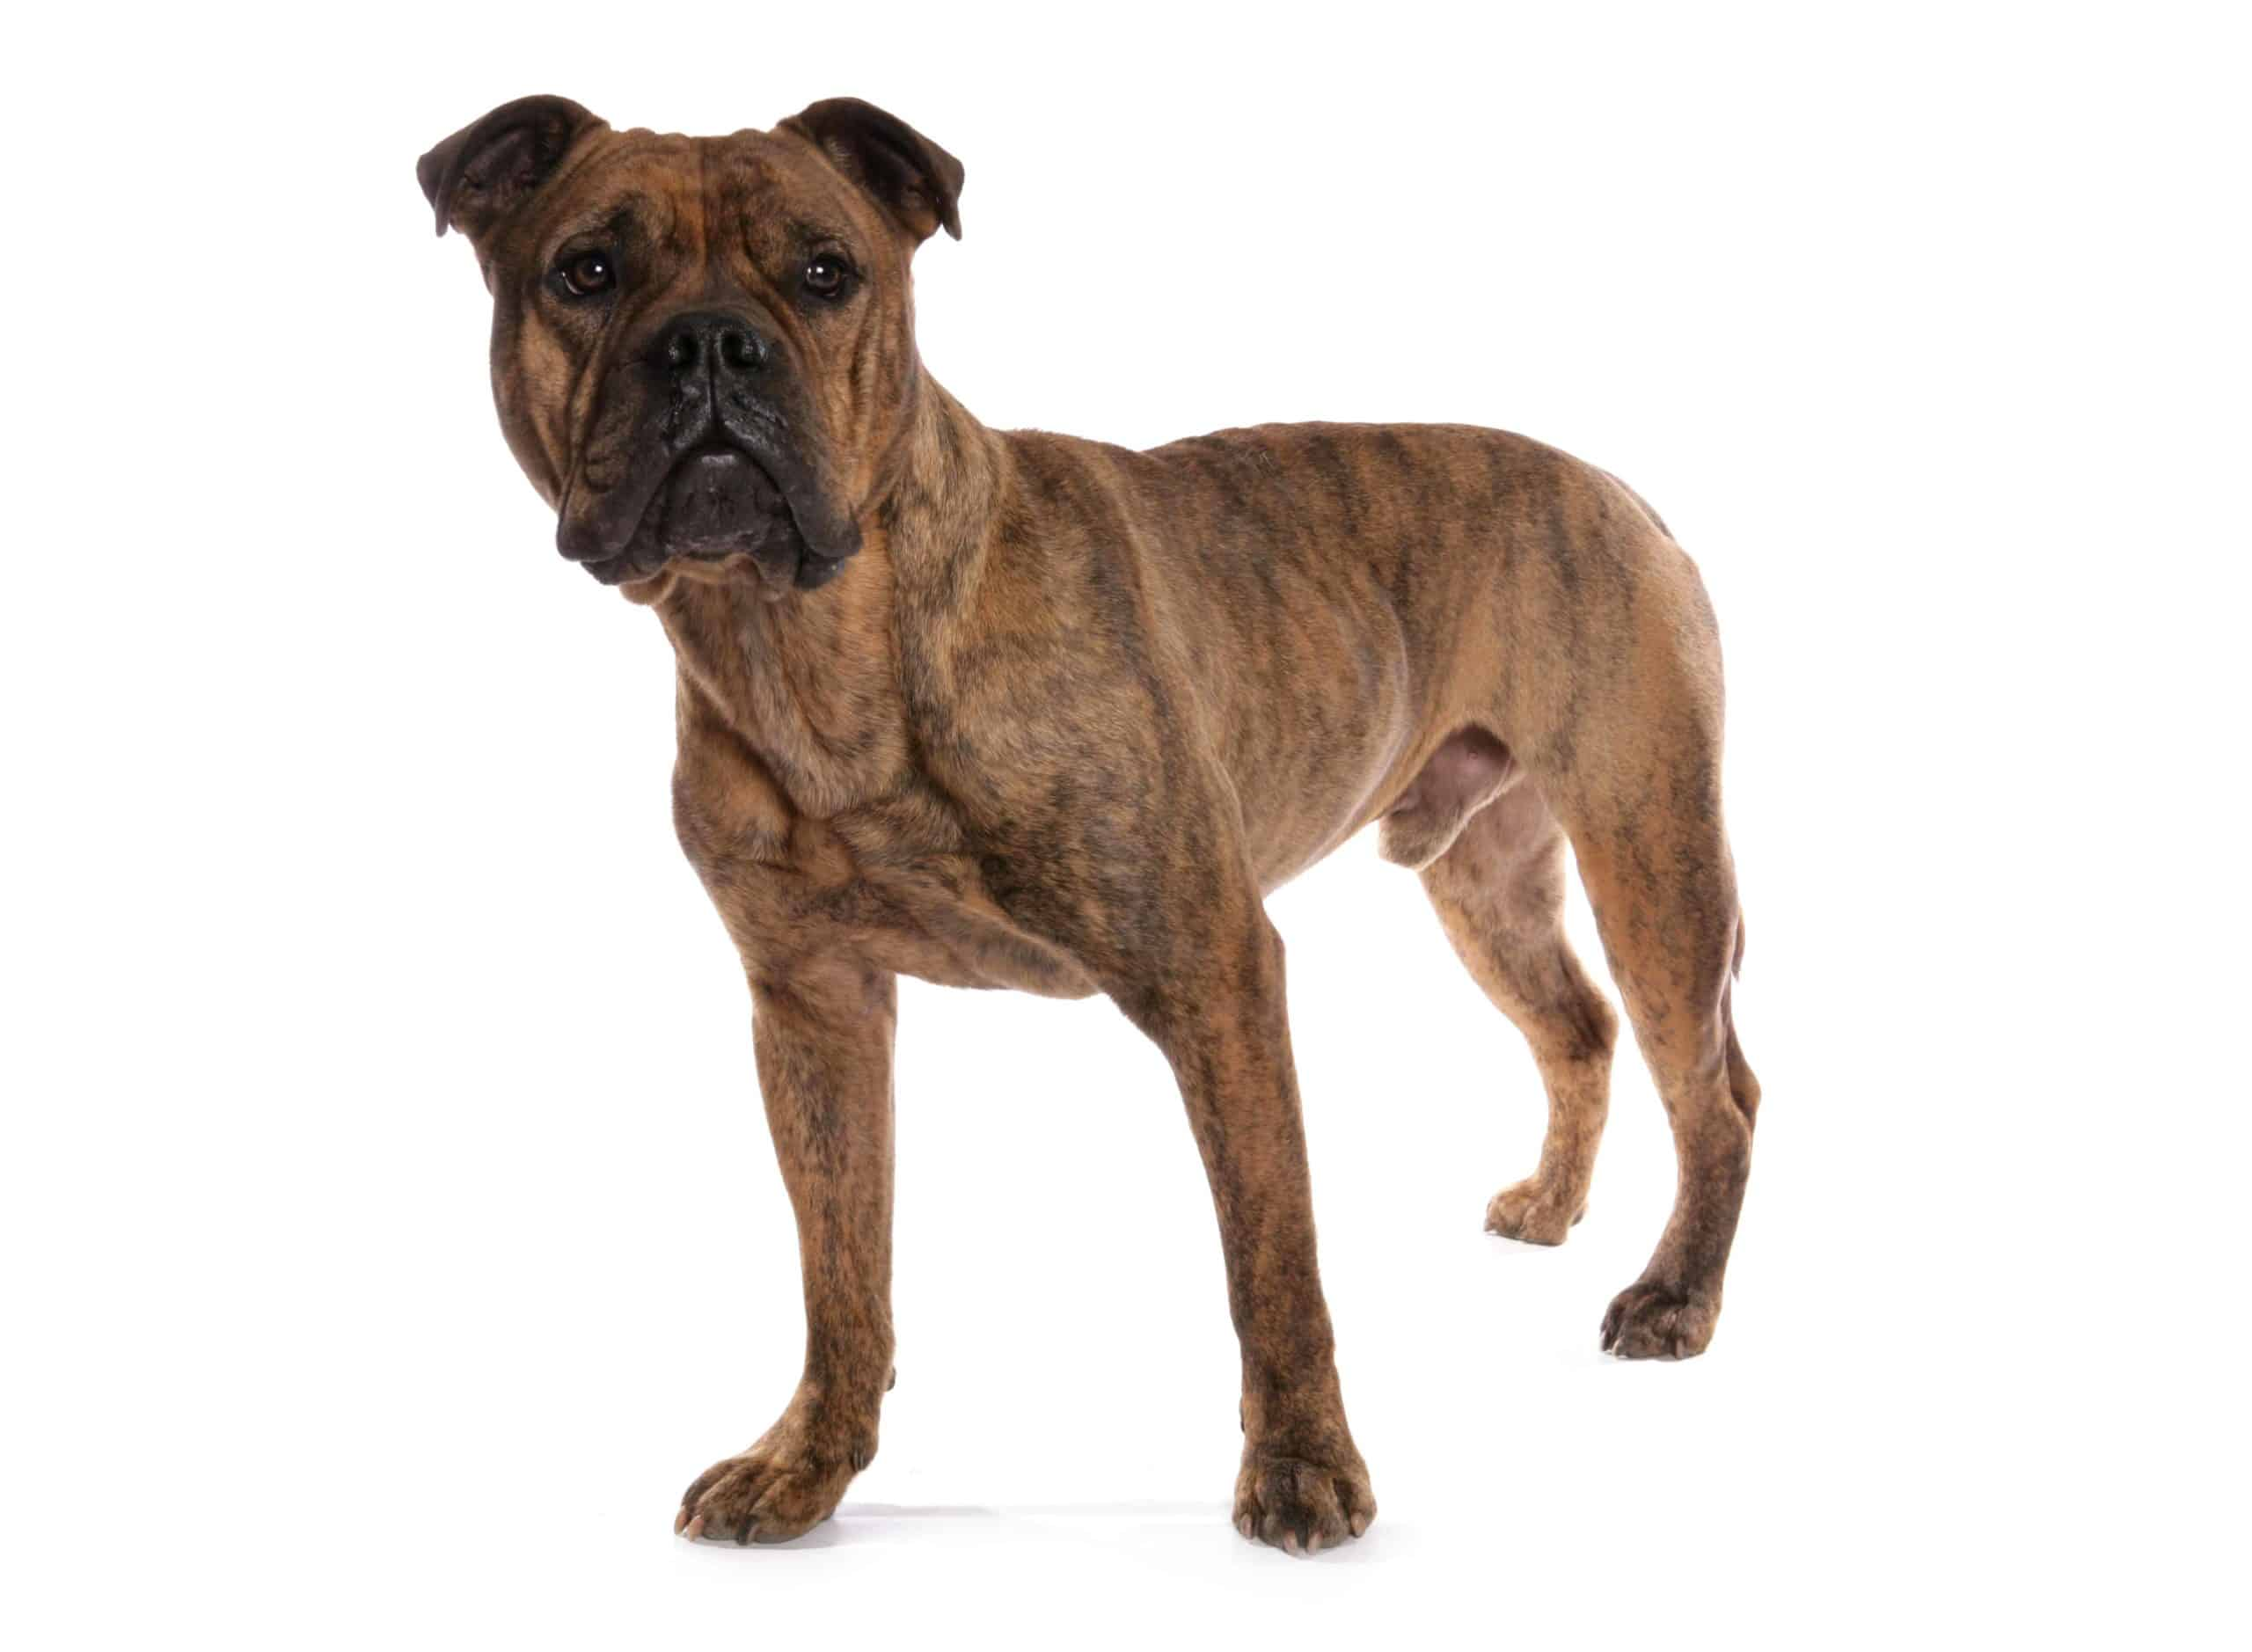 Victorian bulldog on a white background. Victorian Bulldogs are a cross of Bulldogs, Bull terriers, Bull Mastiffs, and Staffordshire Bull Terriers.